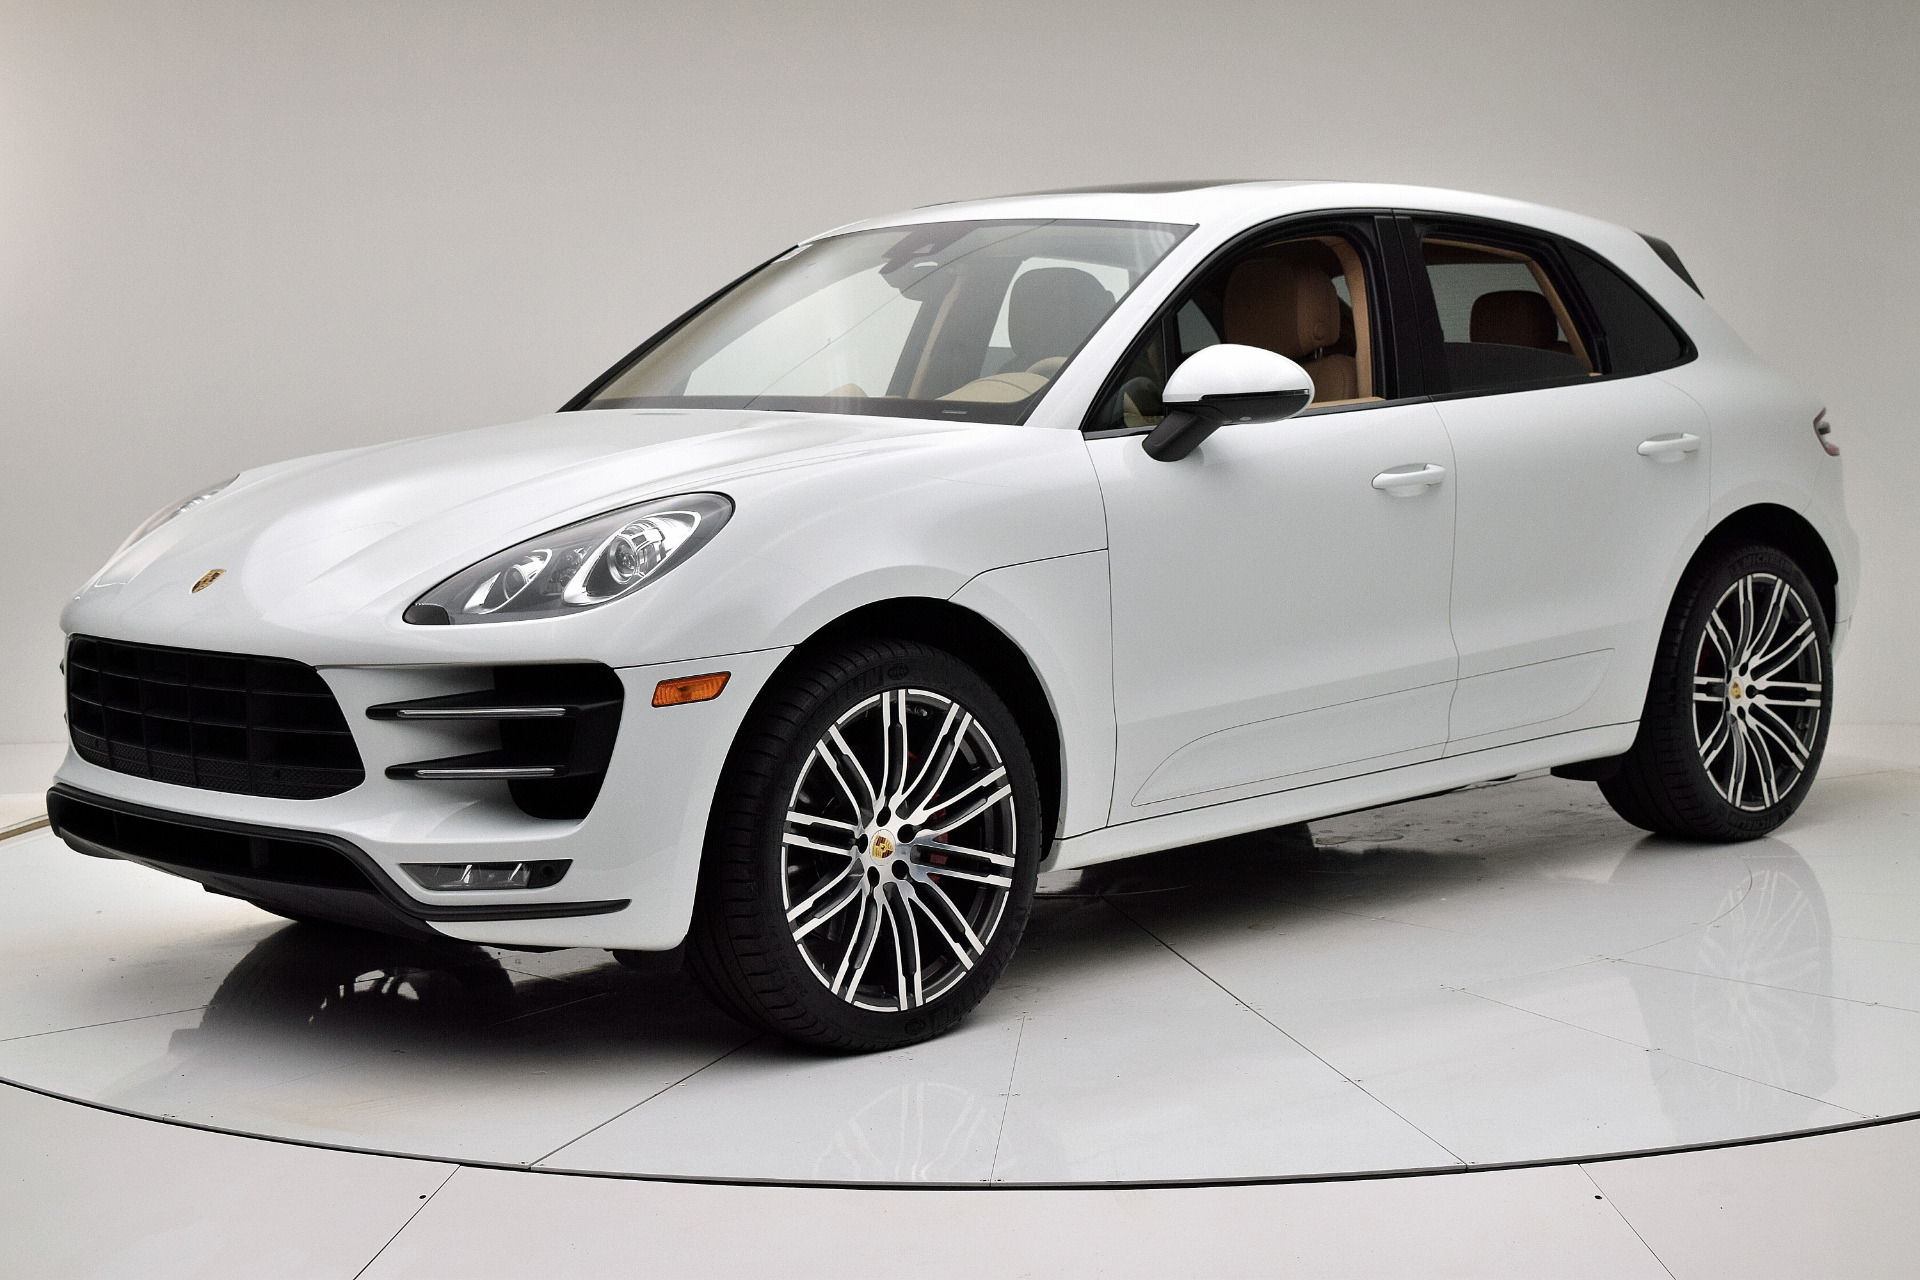 Used 2015 Porsche Macan Turbo for sale $48,880 at F.C. Kerbeck Aston Martin in Palmyra NJ 08065 2